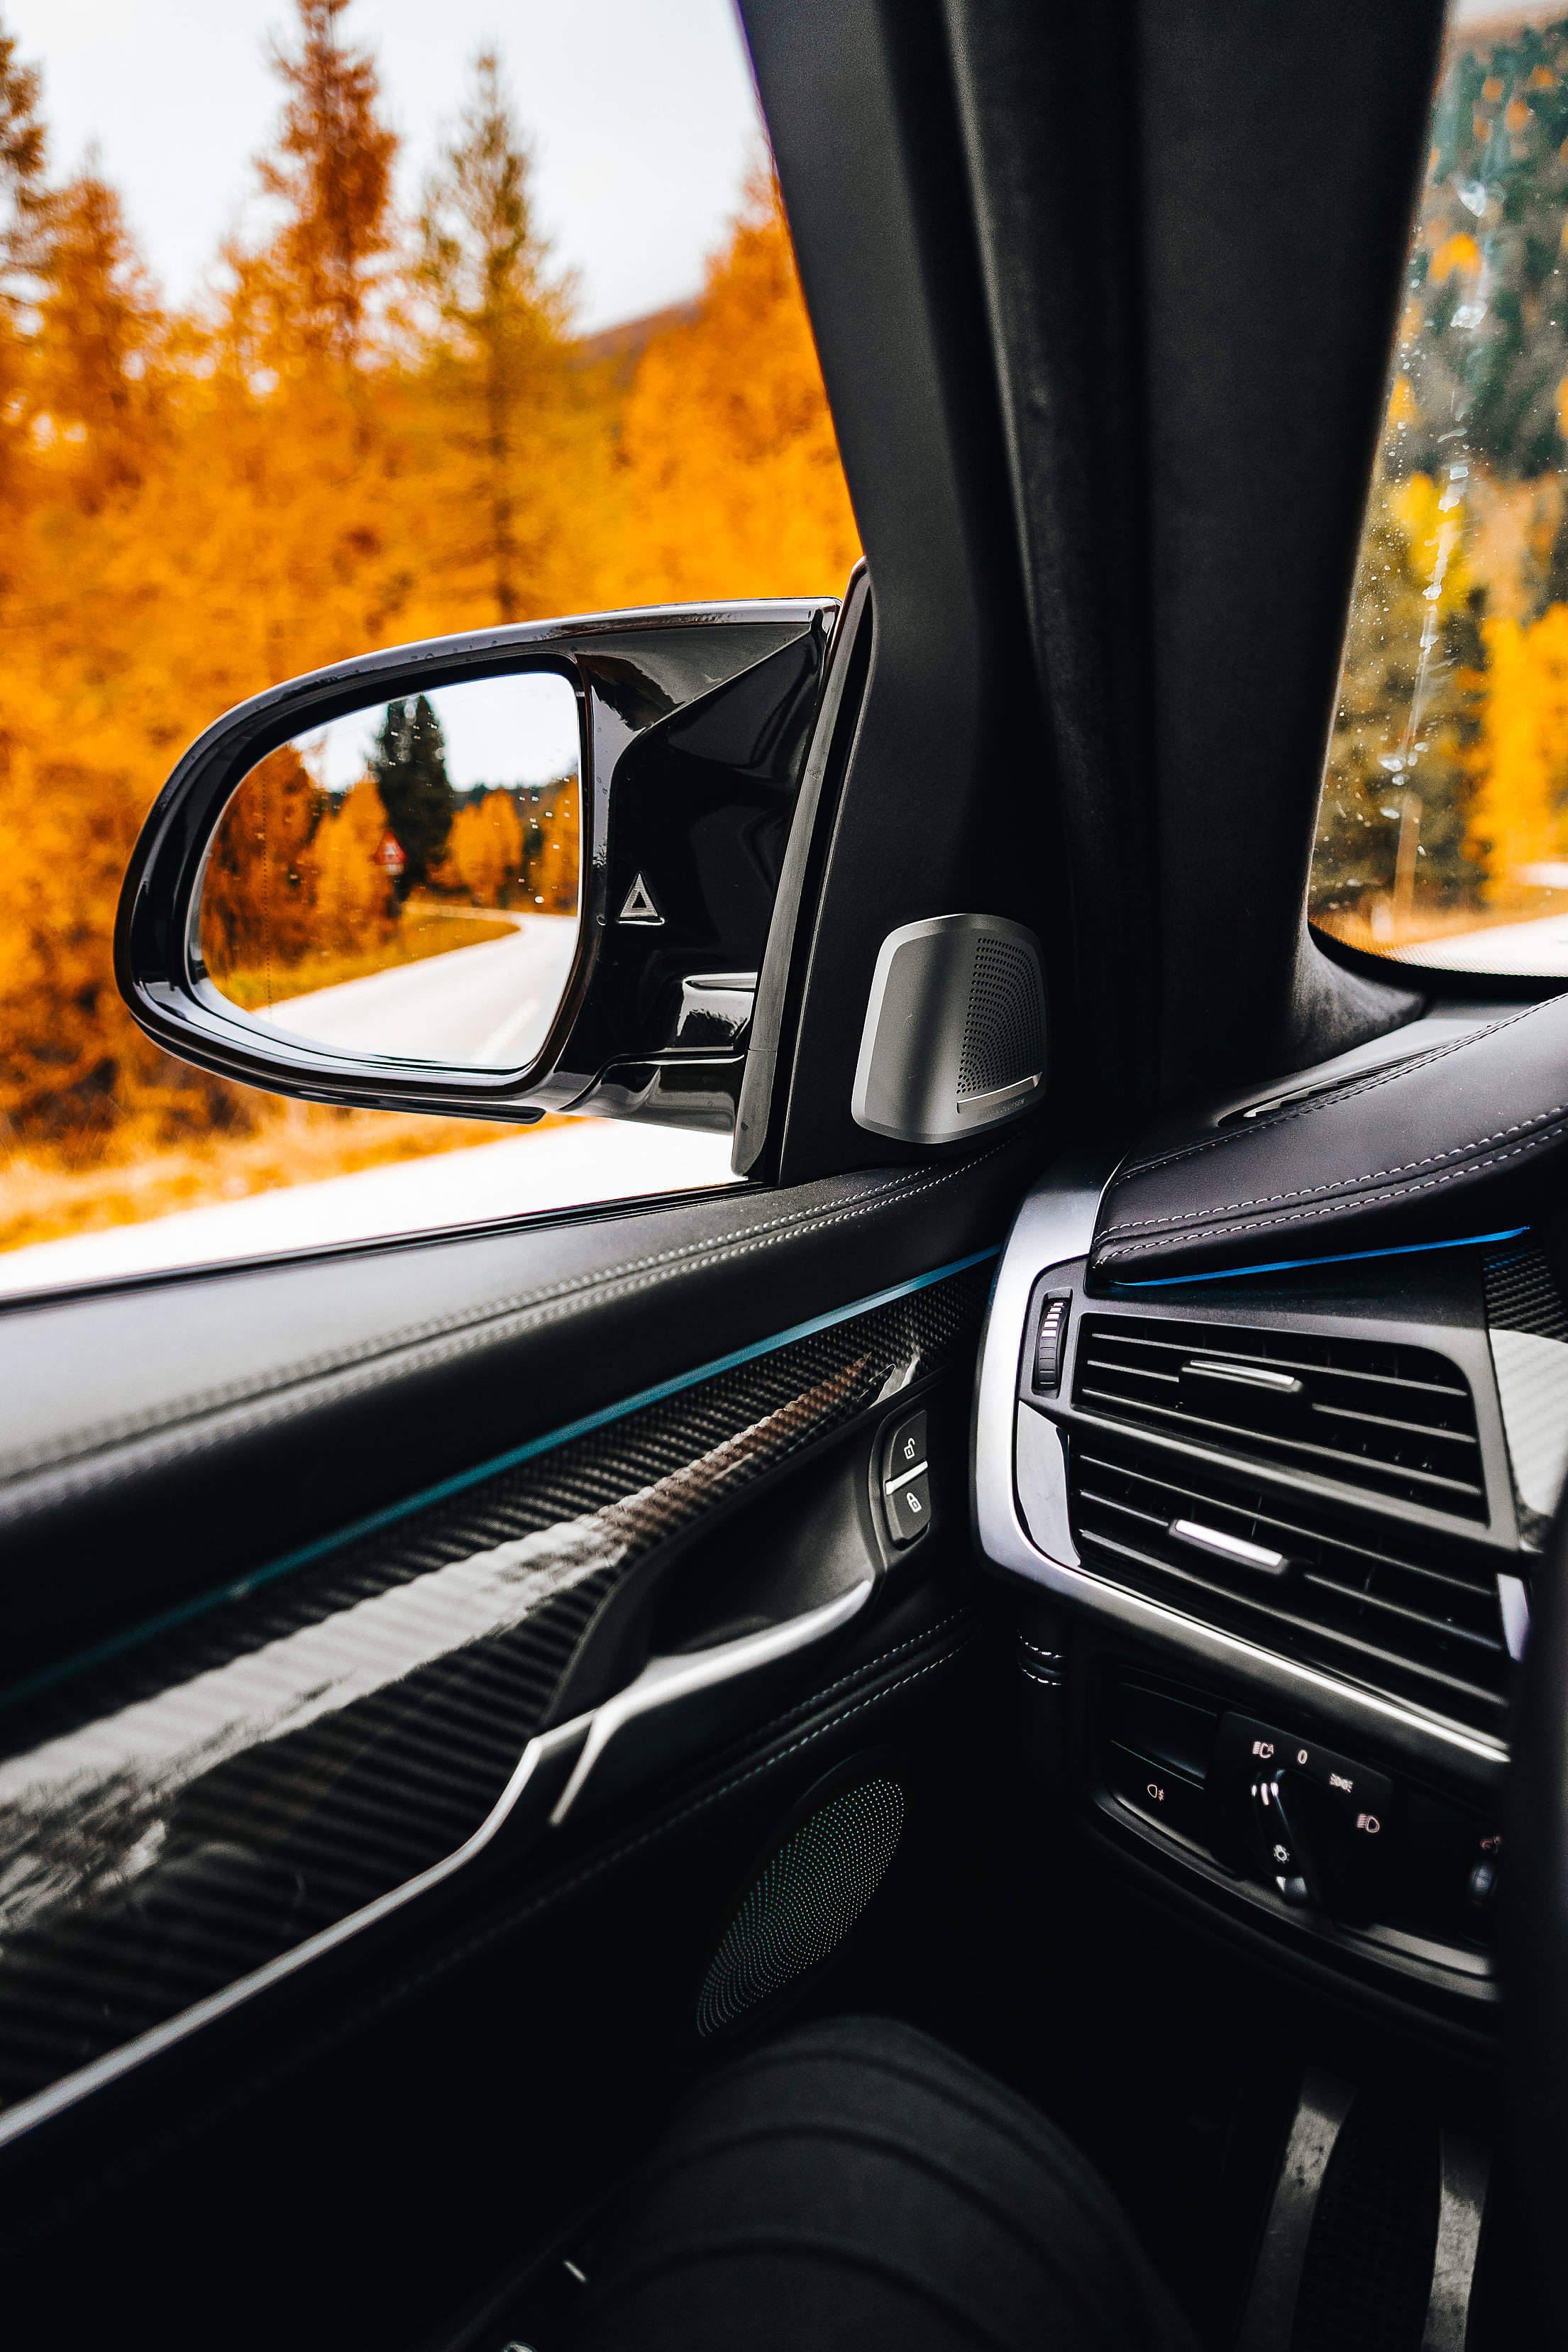 Side View Mirror in a Luxury Car Free Stock Photo